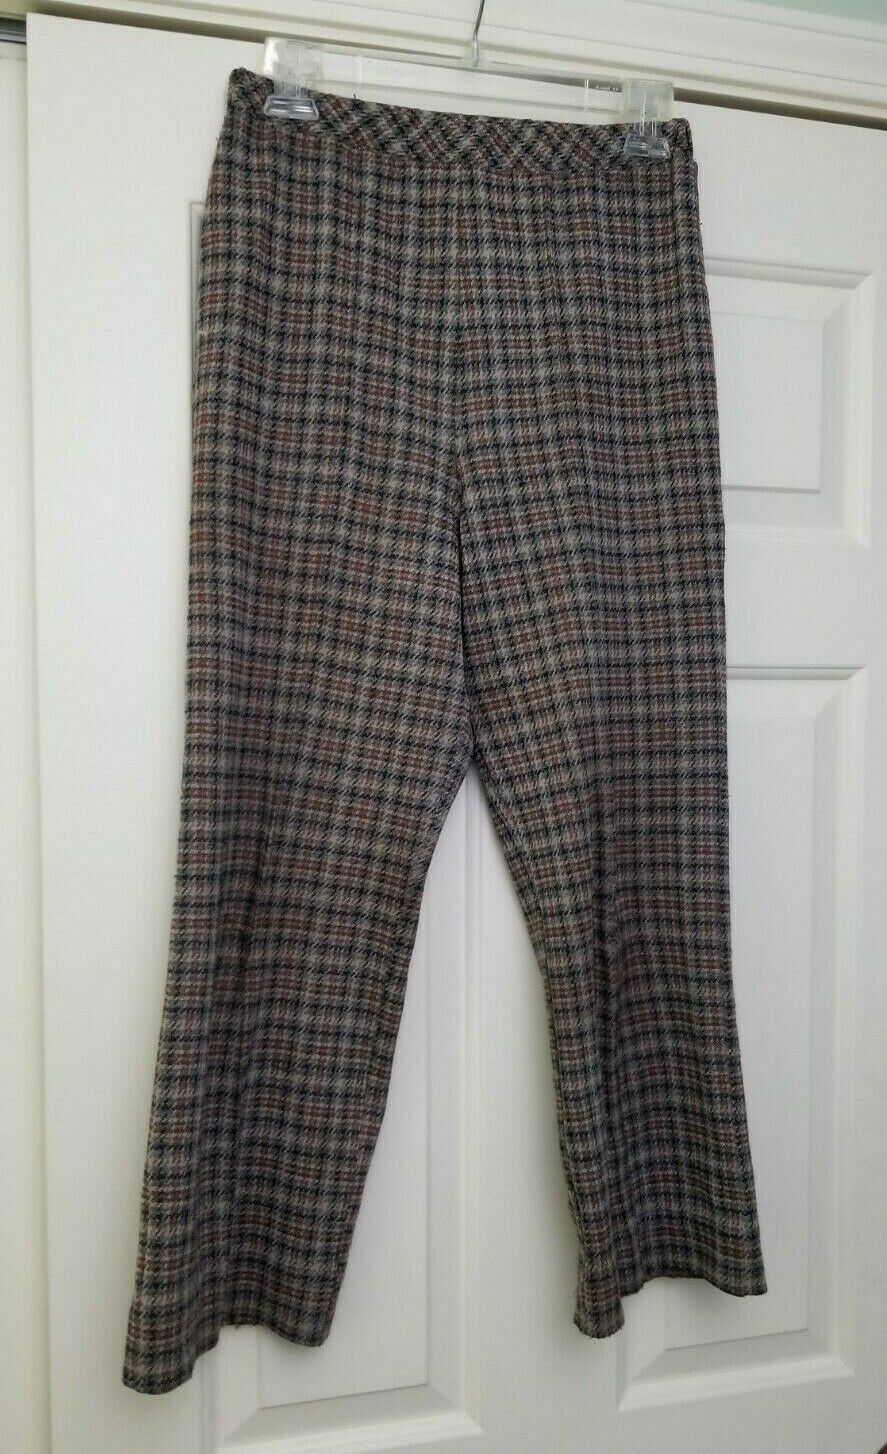 VTG 70s 80s Women's Houndstooth Plaid Pants Brown… - image 3